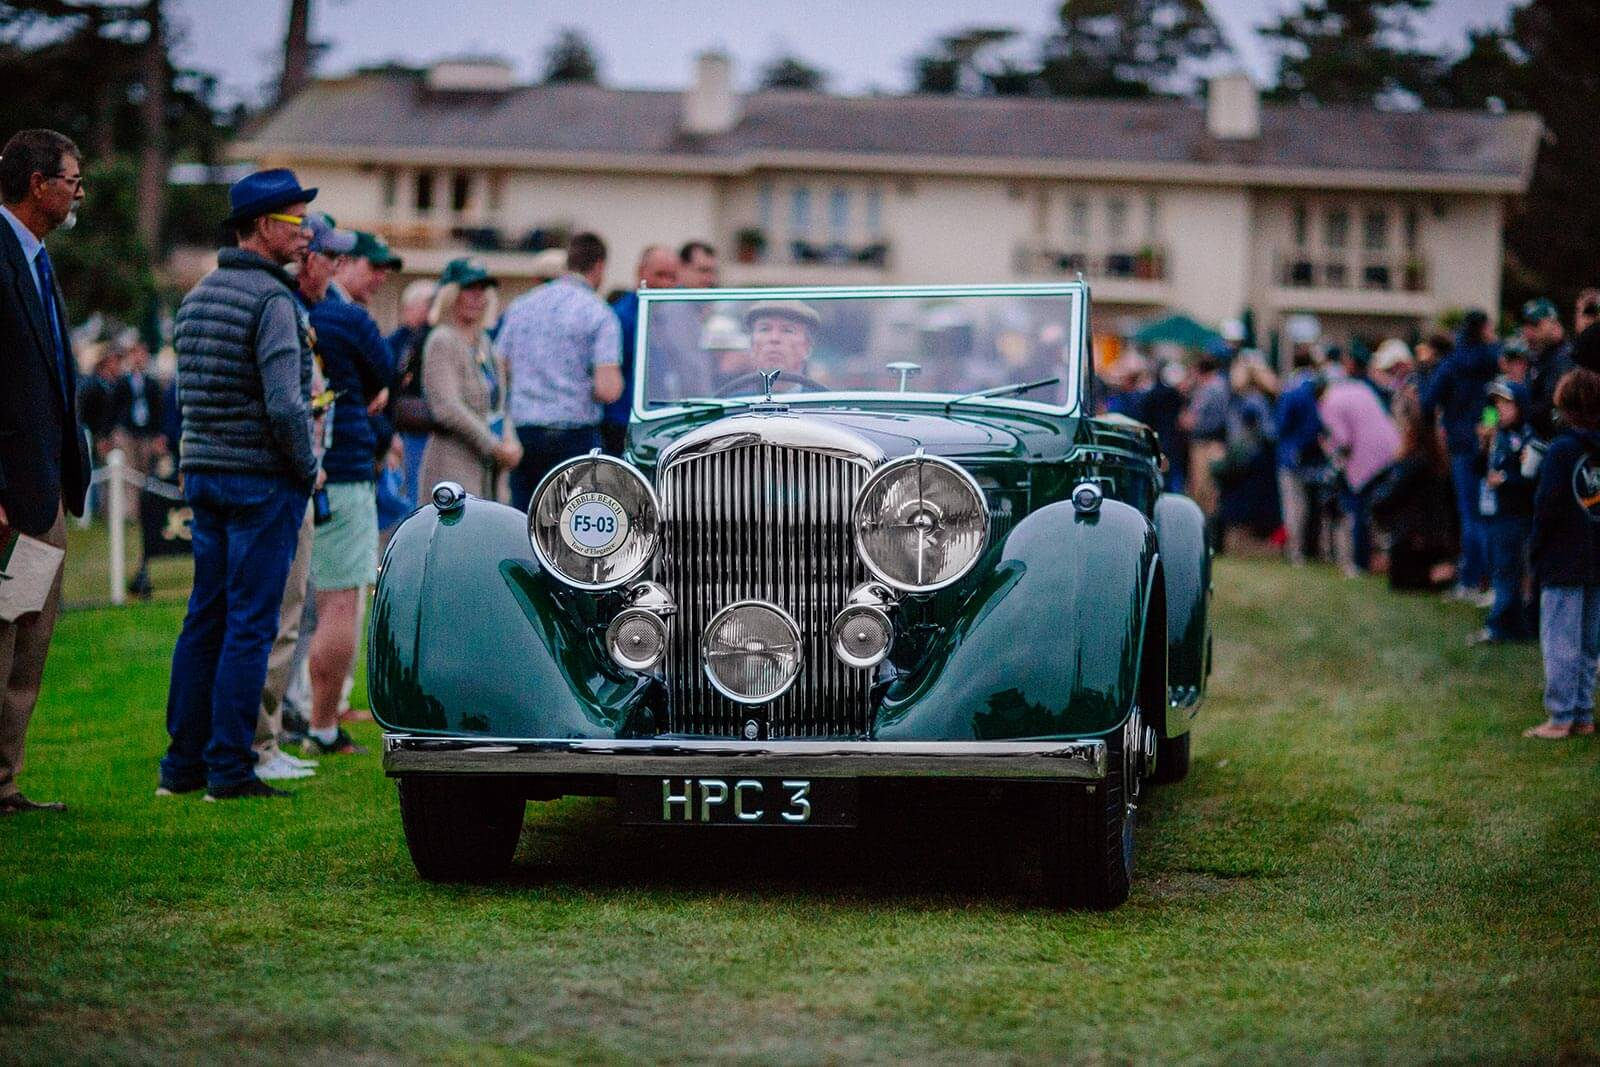 A Pebble Beach Concours entrant driving onto the show field at Dawn Patrol presented by Hagerty